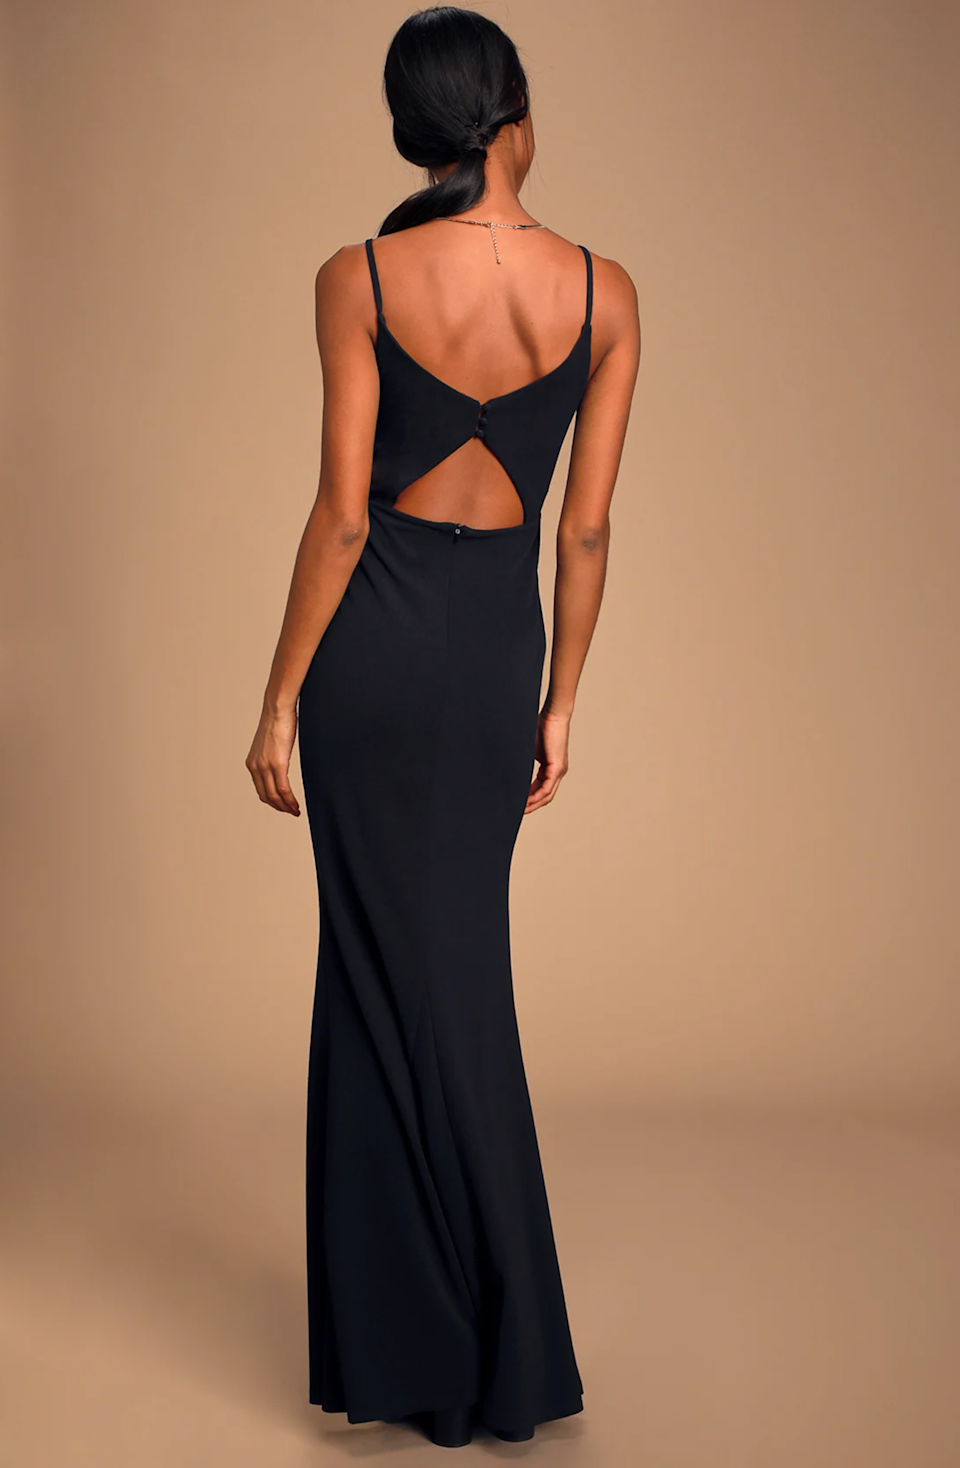 """Lulu's is a gem for cheap bridesmaid dresses, including this stunning cutout maxidress. $88, Lulu's. <a href=""""https://www.lulus.com/products/moments-of-bliss-black-backless-mermaid-maxi-dress/878142.html"""" rel=""""nofollow noopener"""" target=""""_blank"""" data-ylk=""""slk:Get it now!"""" class=""""link rapid-noclick-resp"""">Get it now!</a>"""